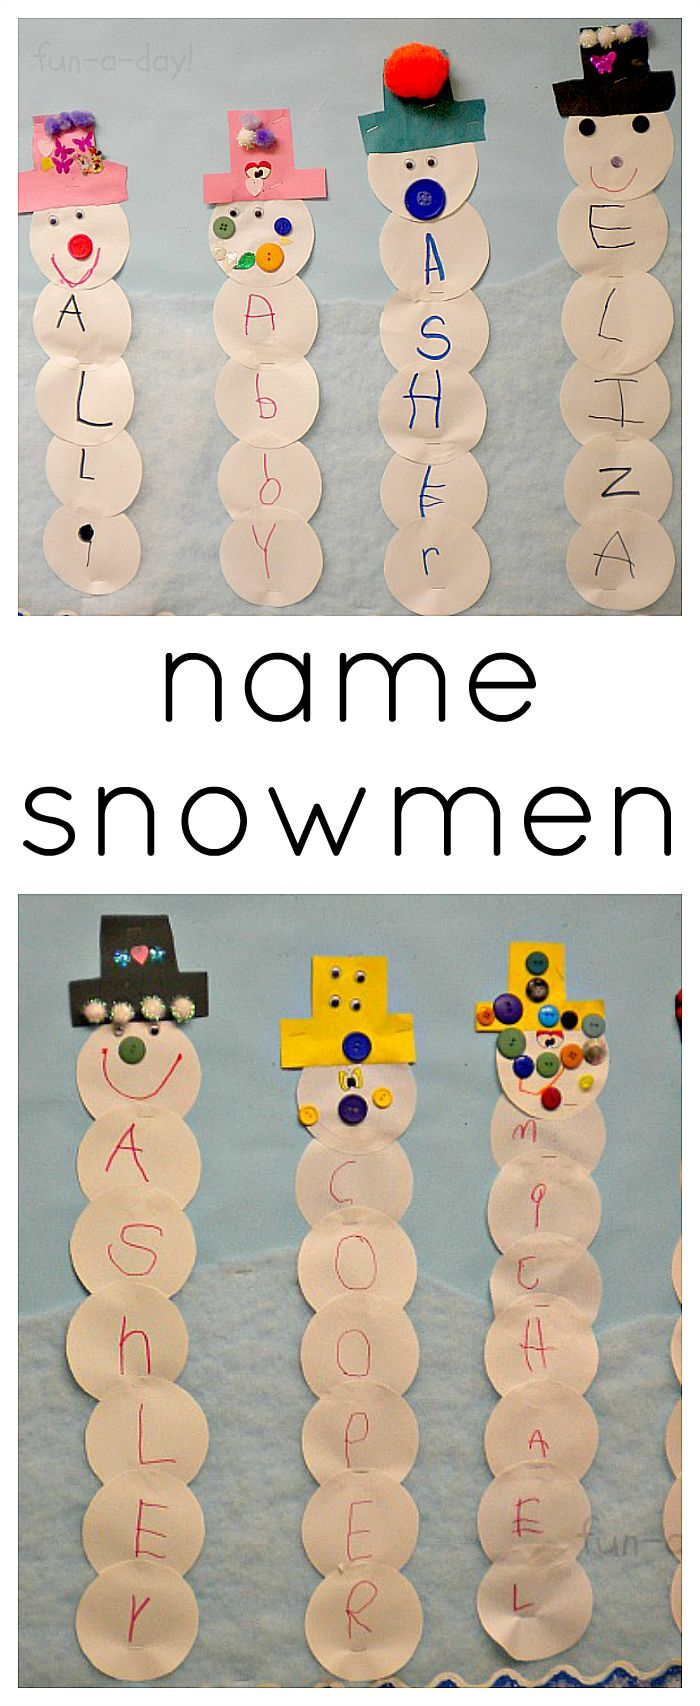 Looking for a winter crafting activity for preschoolers? This snowman name craft tutorial courtesy of Fun-A-Day will give little ones practice being creative. Hang them up on a wall at home or in the classroom to show off their creations.